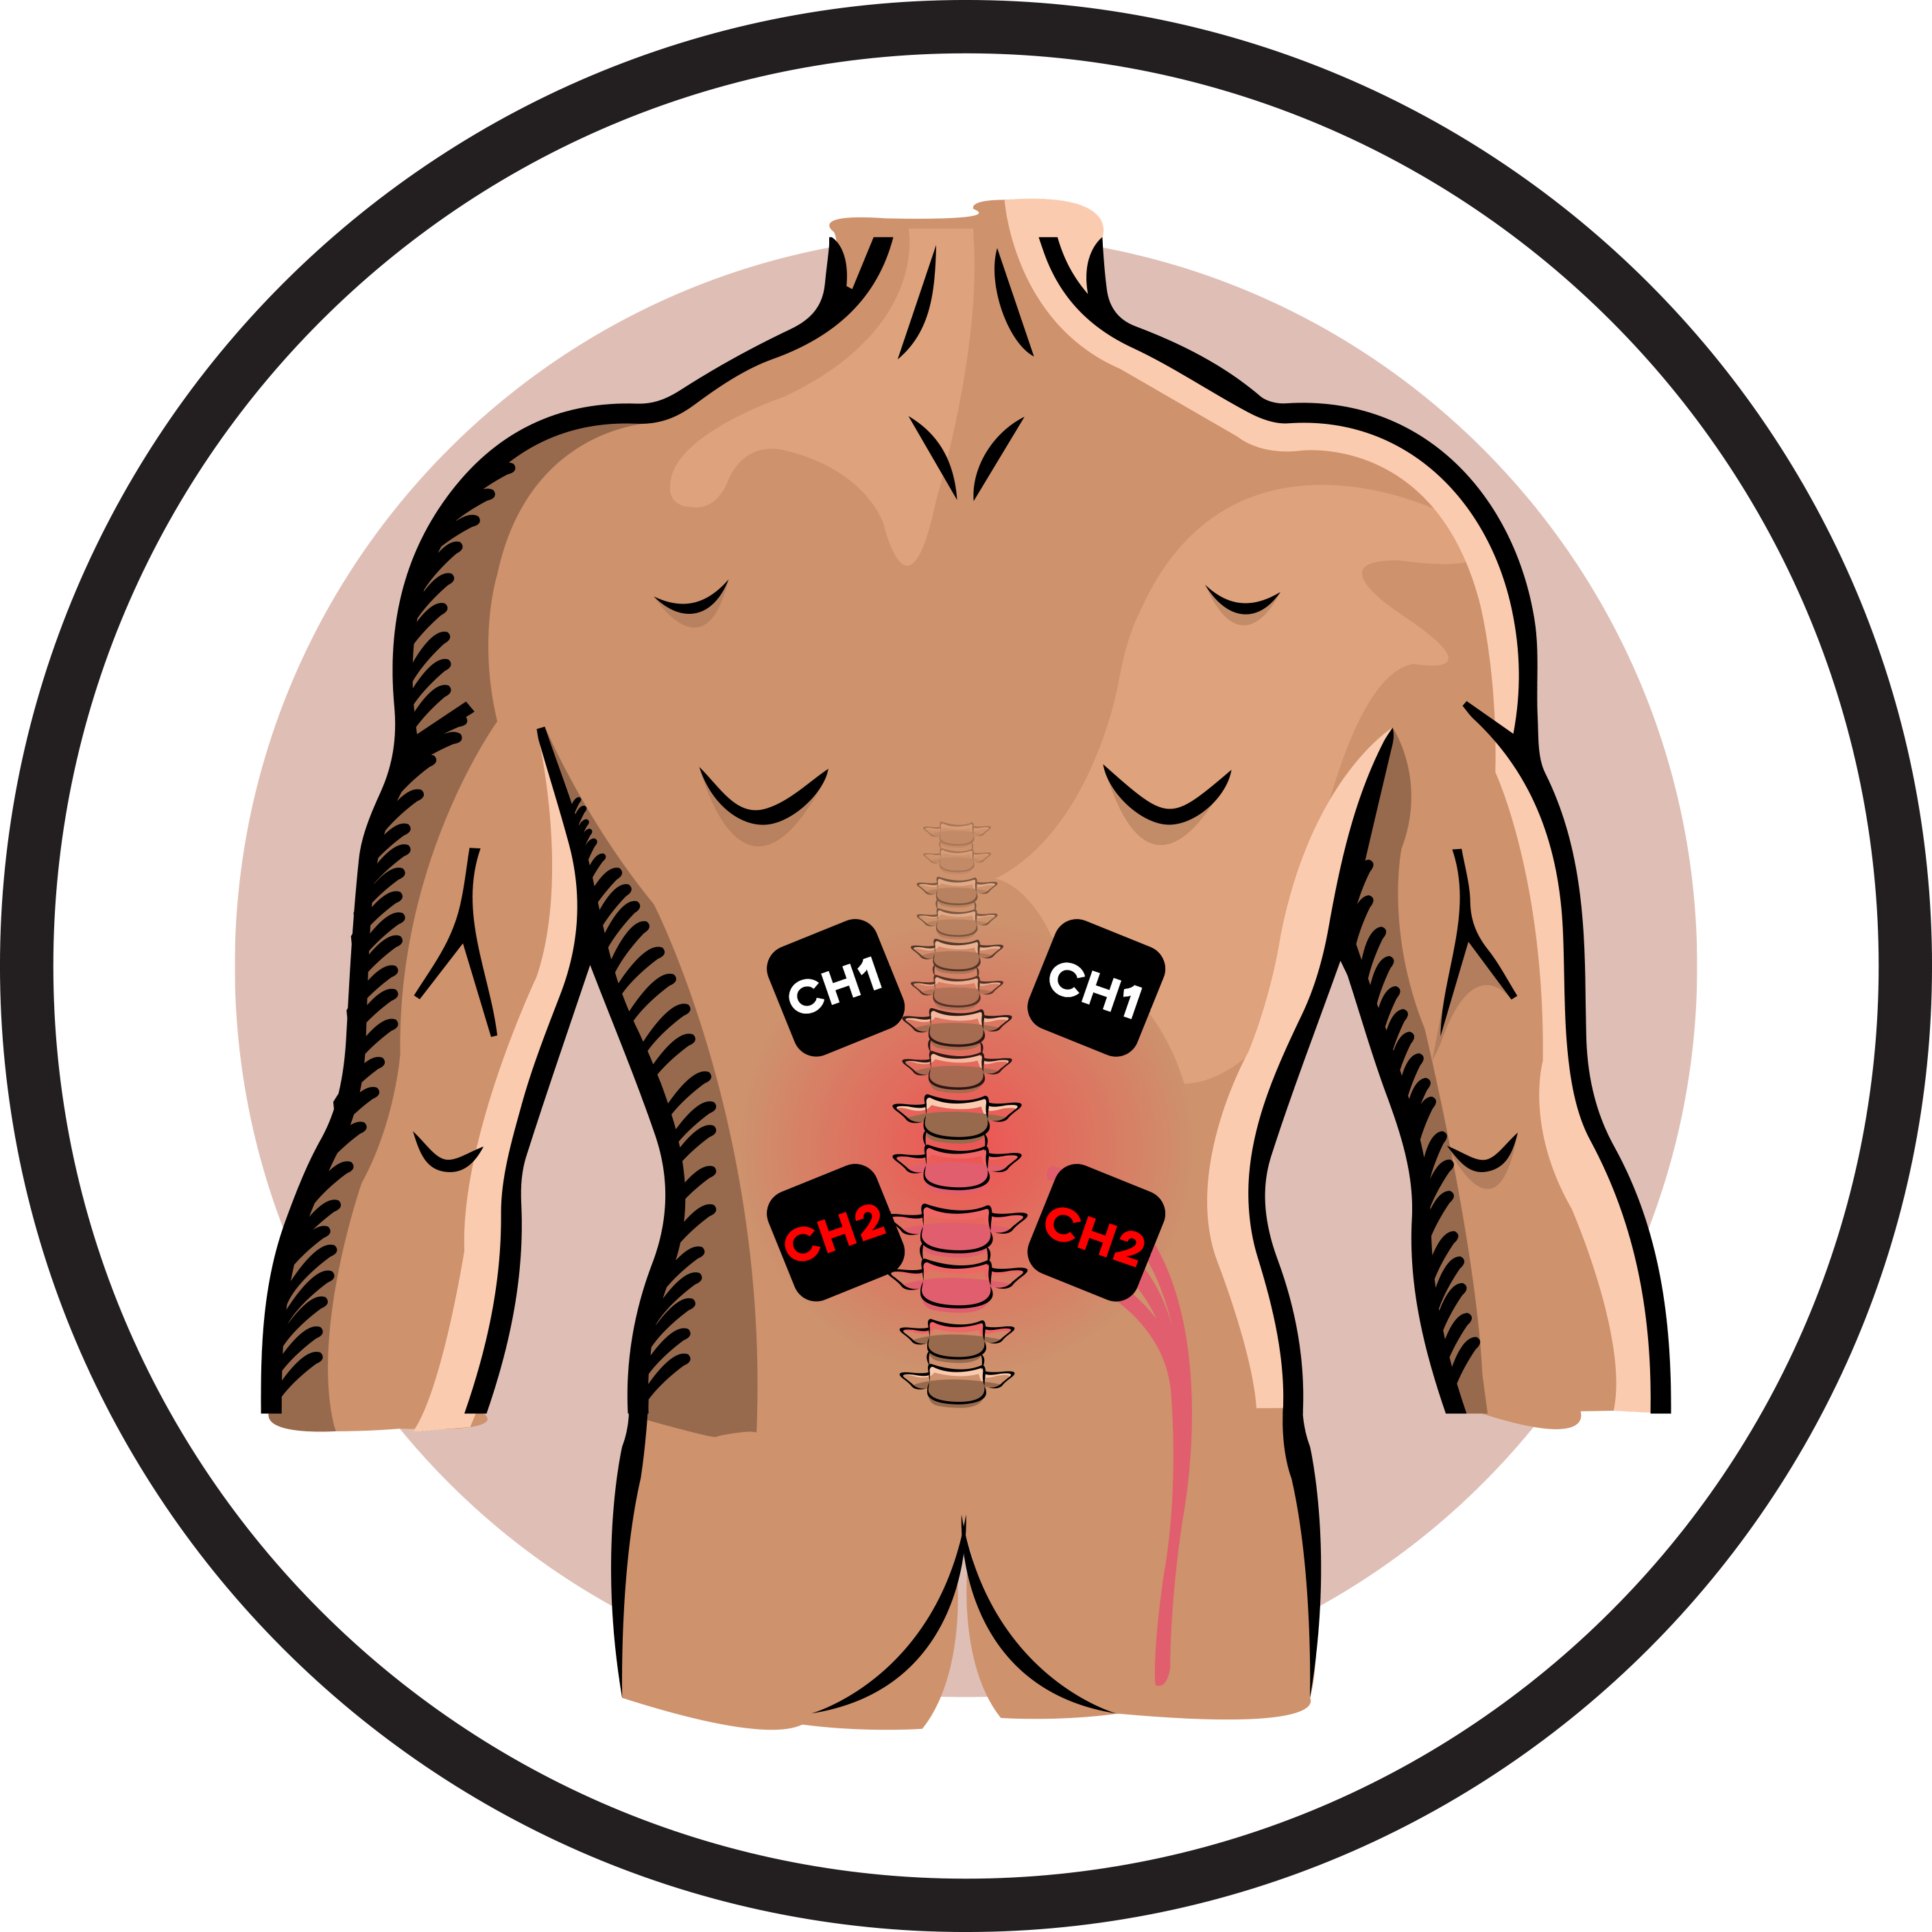 Ireliev slipped disk electrode. Pain clipart muscle spasm